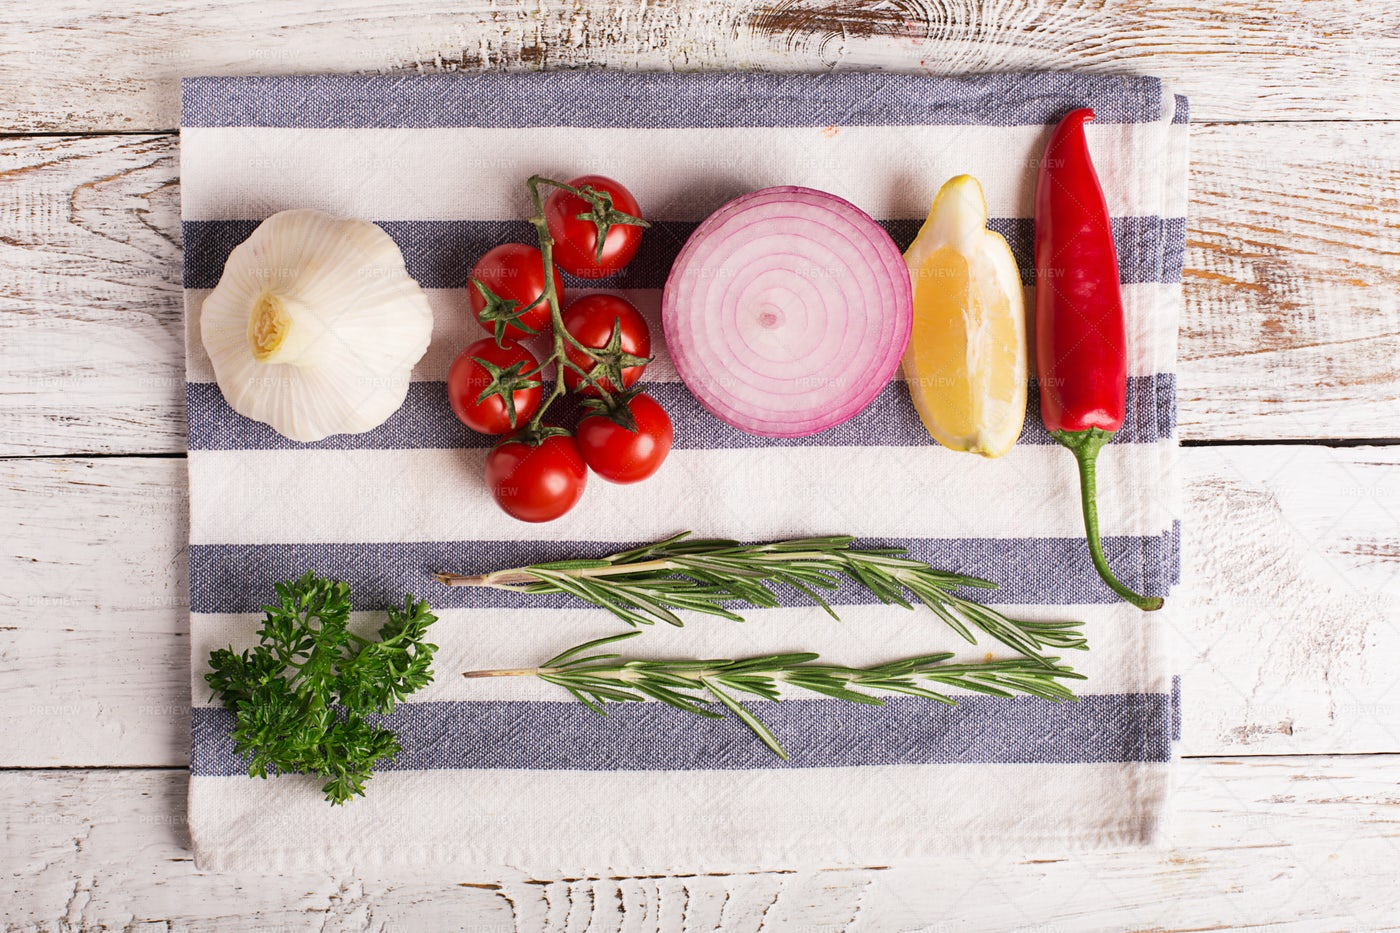 Vegetables And Spices: Stock Photos